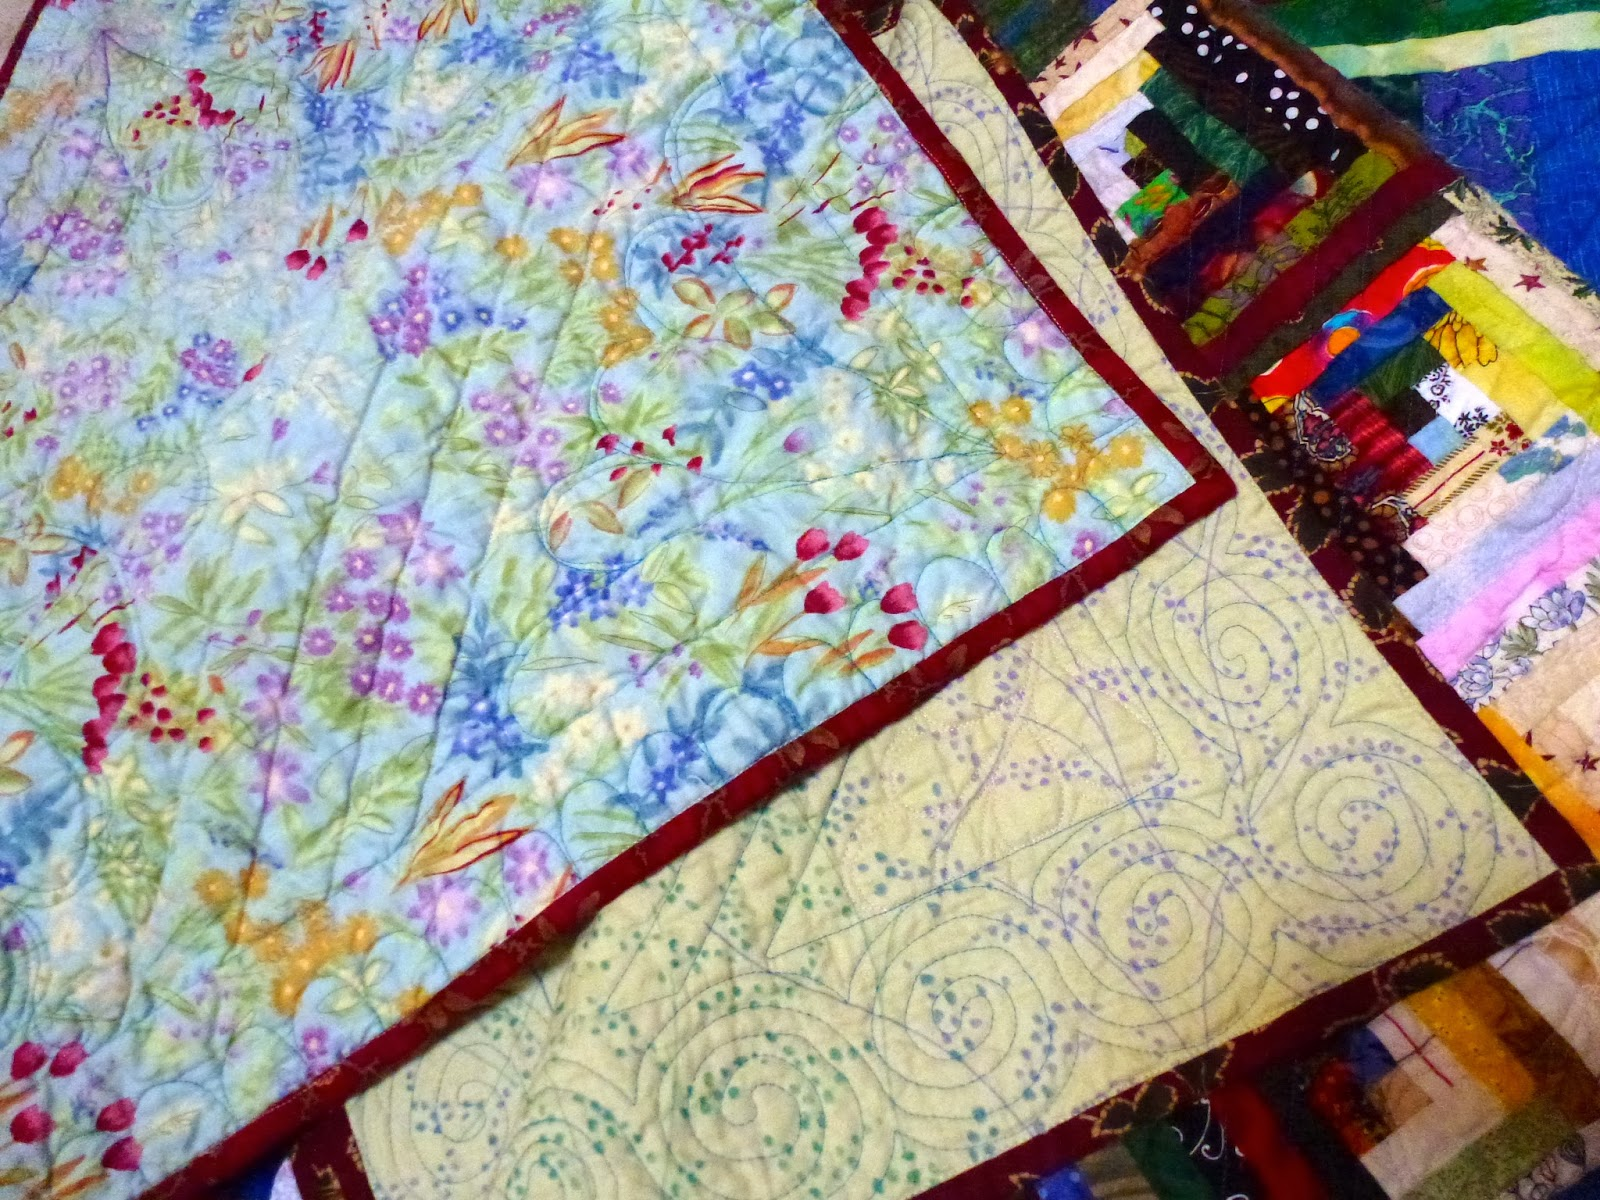 Straight-line, feather and spiral designs were used for the quilting.